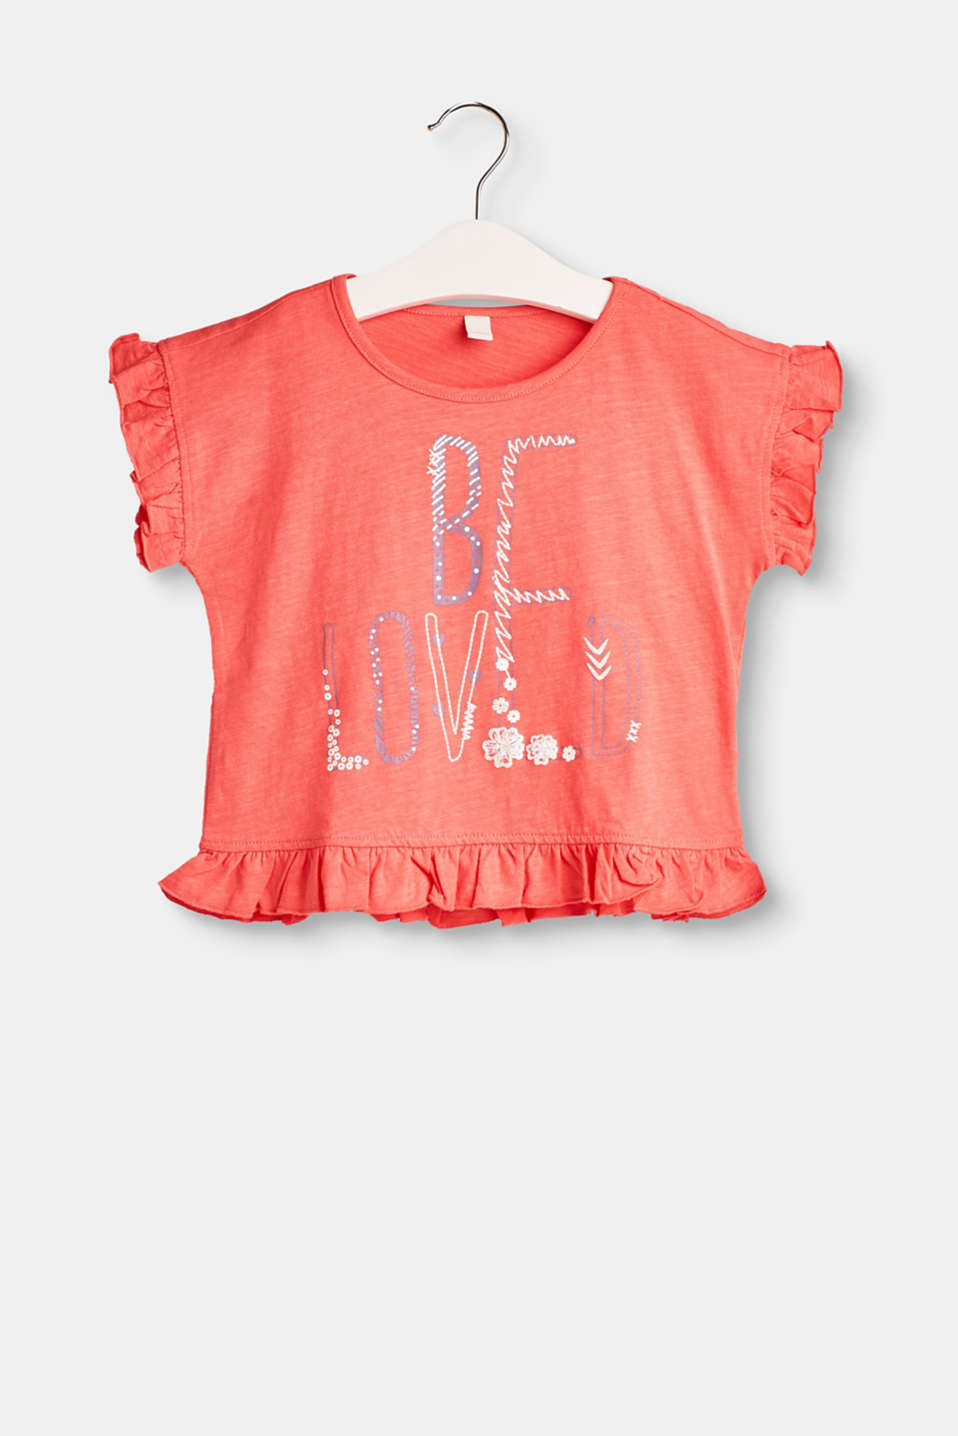 Esprit - T-shirt with a 3D print and frills, 100% cotton